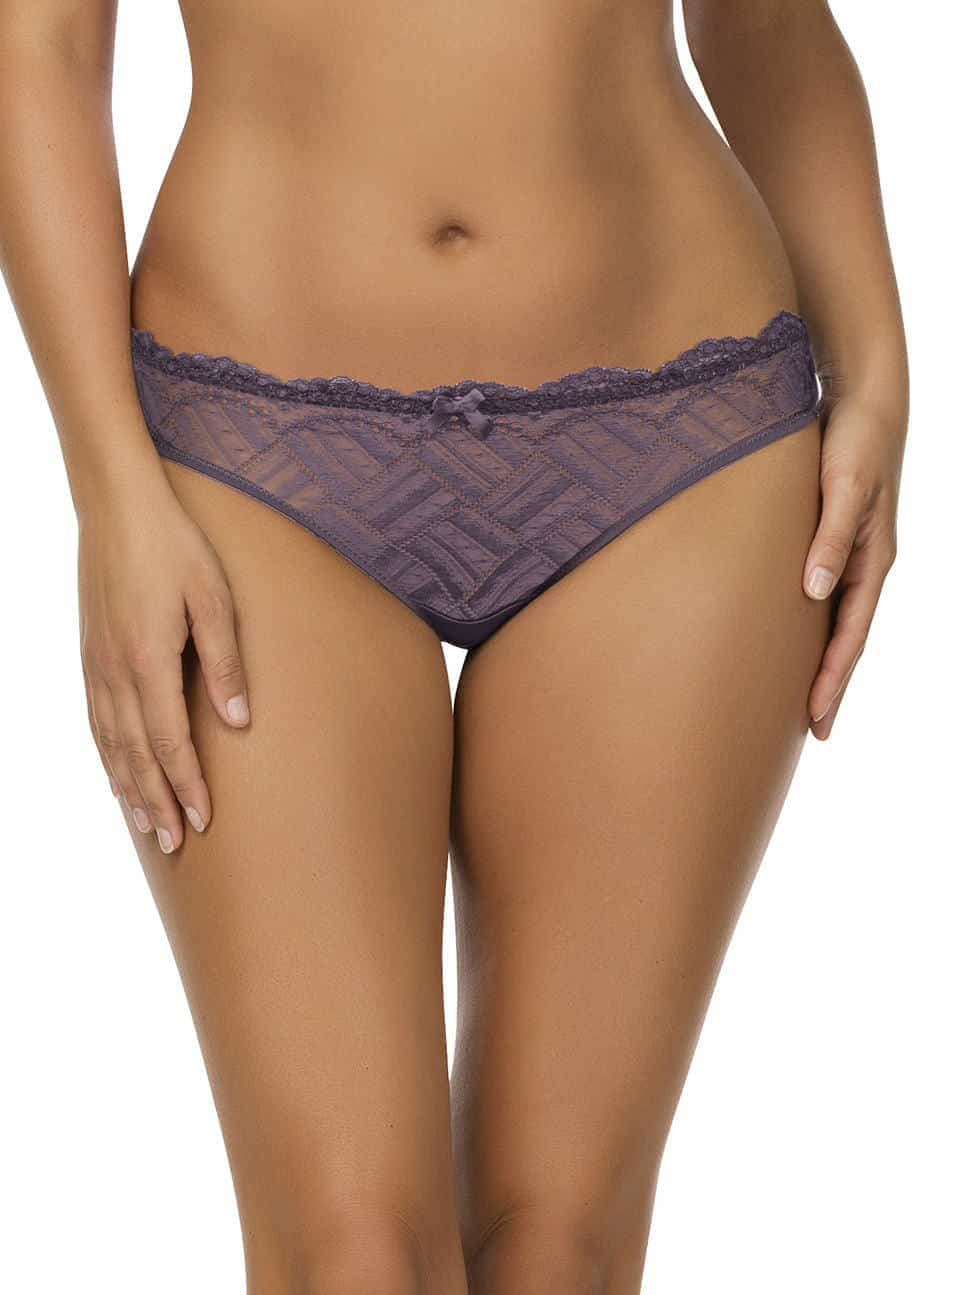 Lucie BriefP5203 MoodIndigo - Lucie Brief - Mood Indigo - P5203